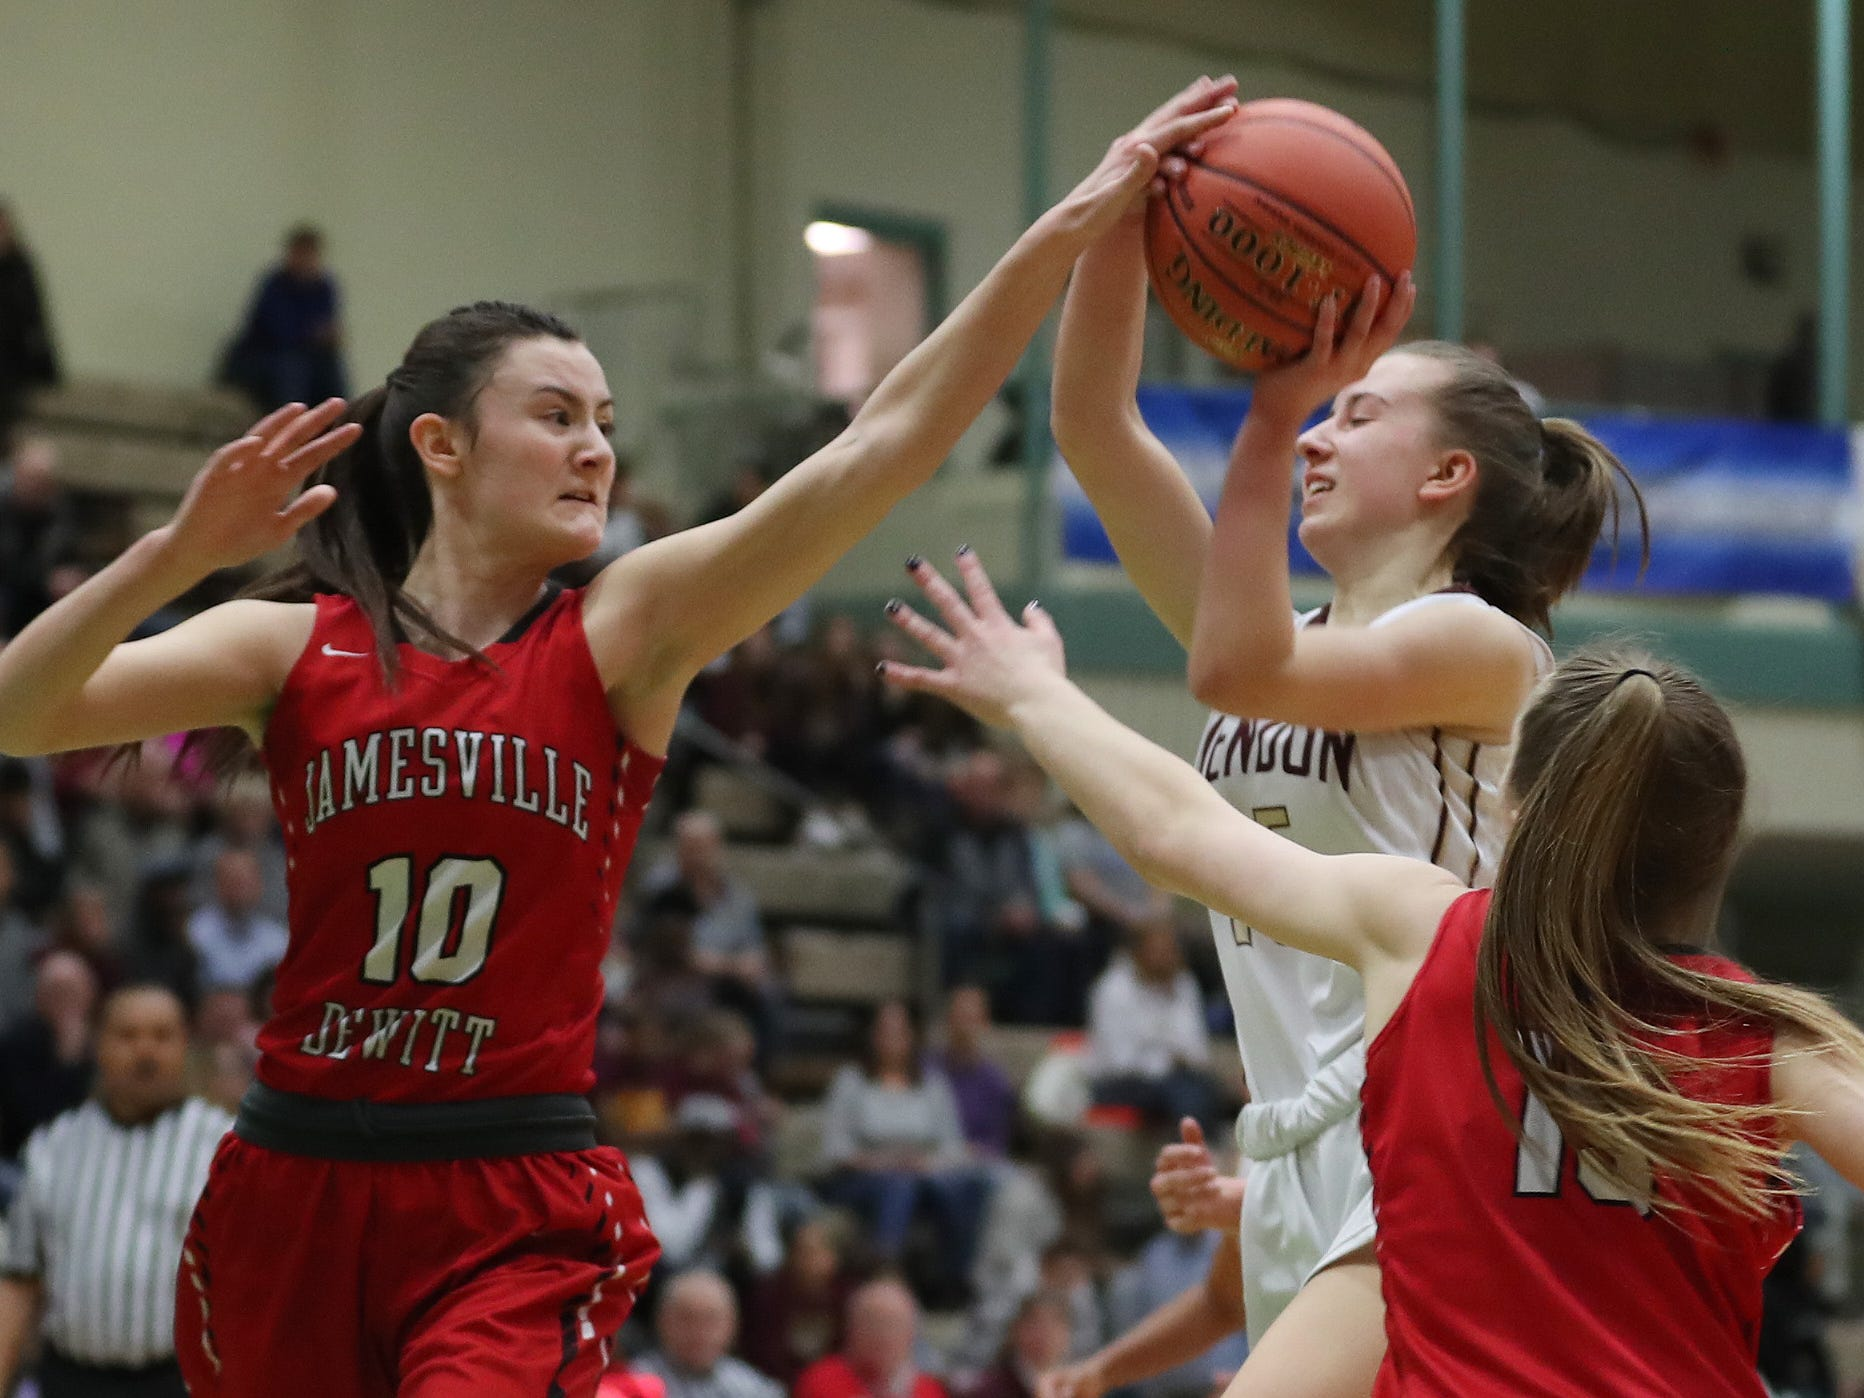 Pittsford Mendon's Danielle Strauf (15) gets pressured by Jamesville-DeWitt's Andrea Sumida (10) during the girls Class A state semifinal at Hudson Valley Community College in Troy March 16, 2019.